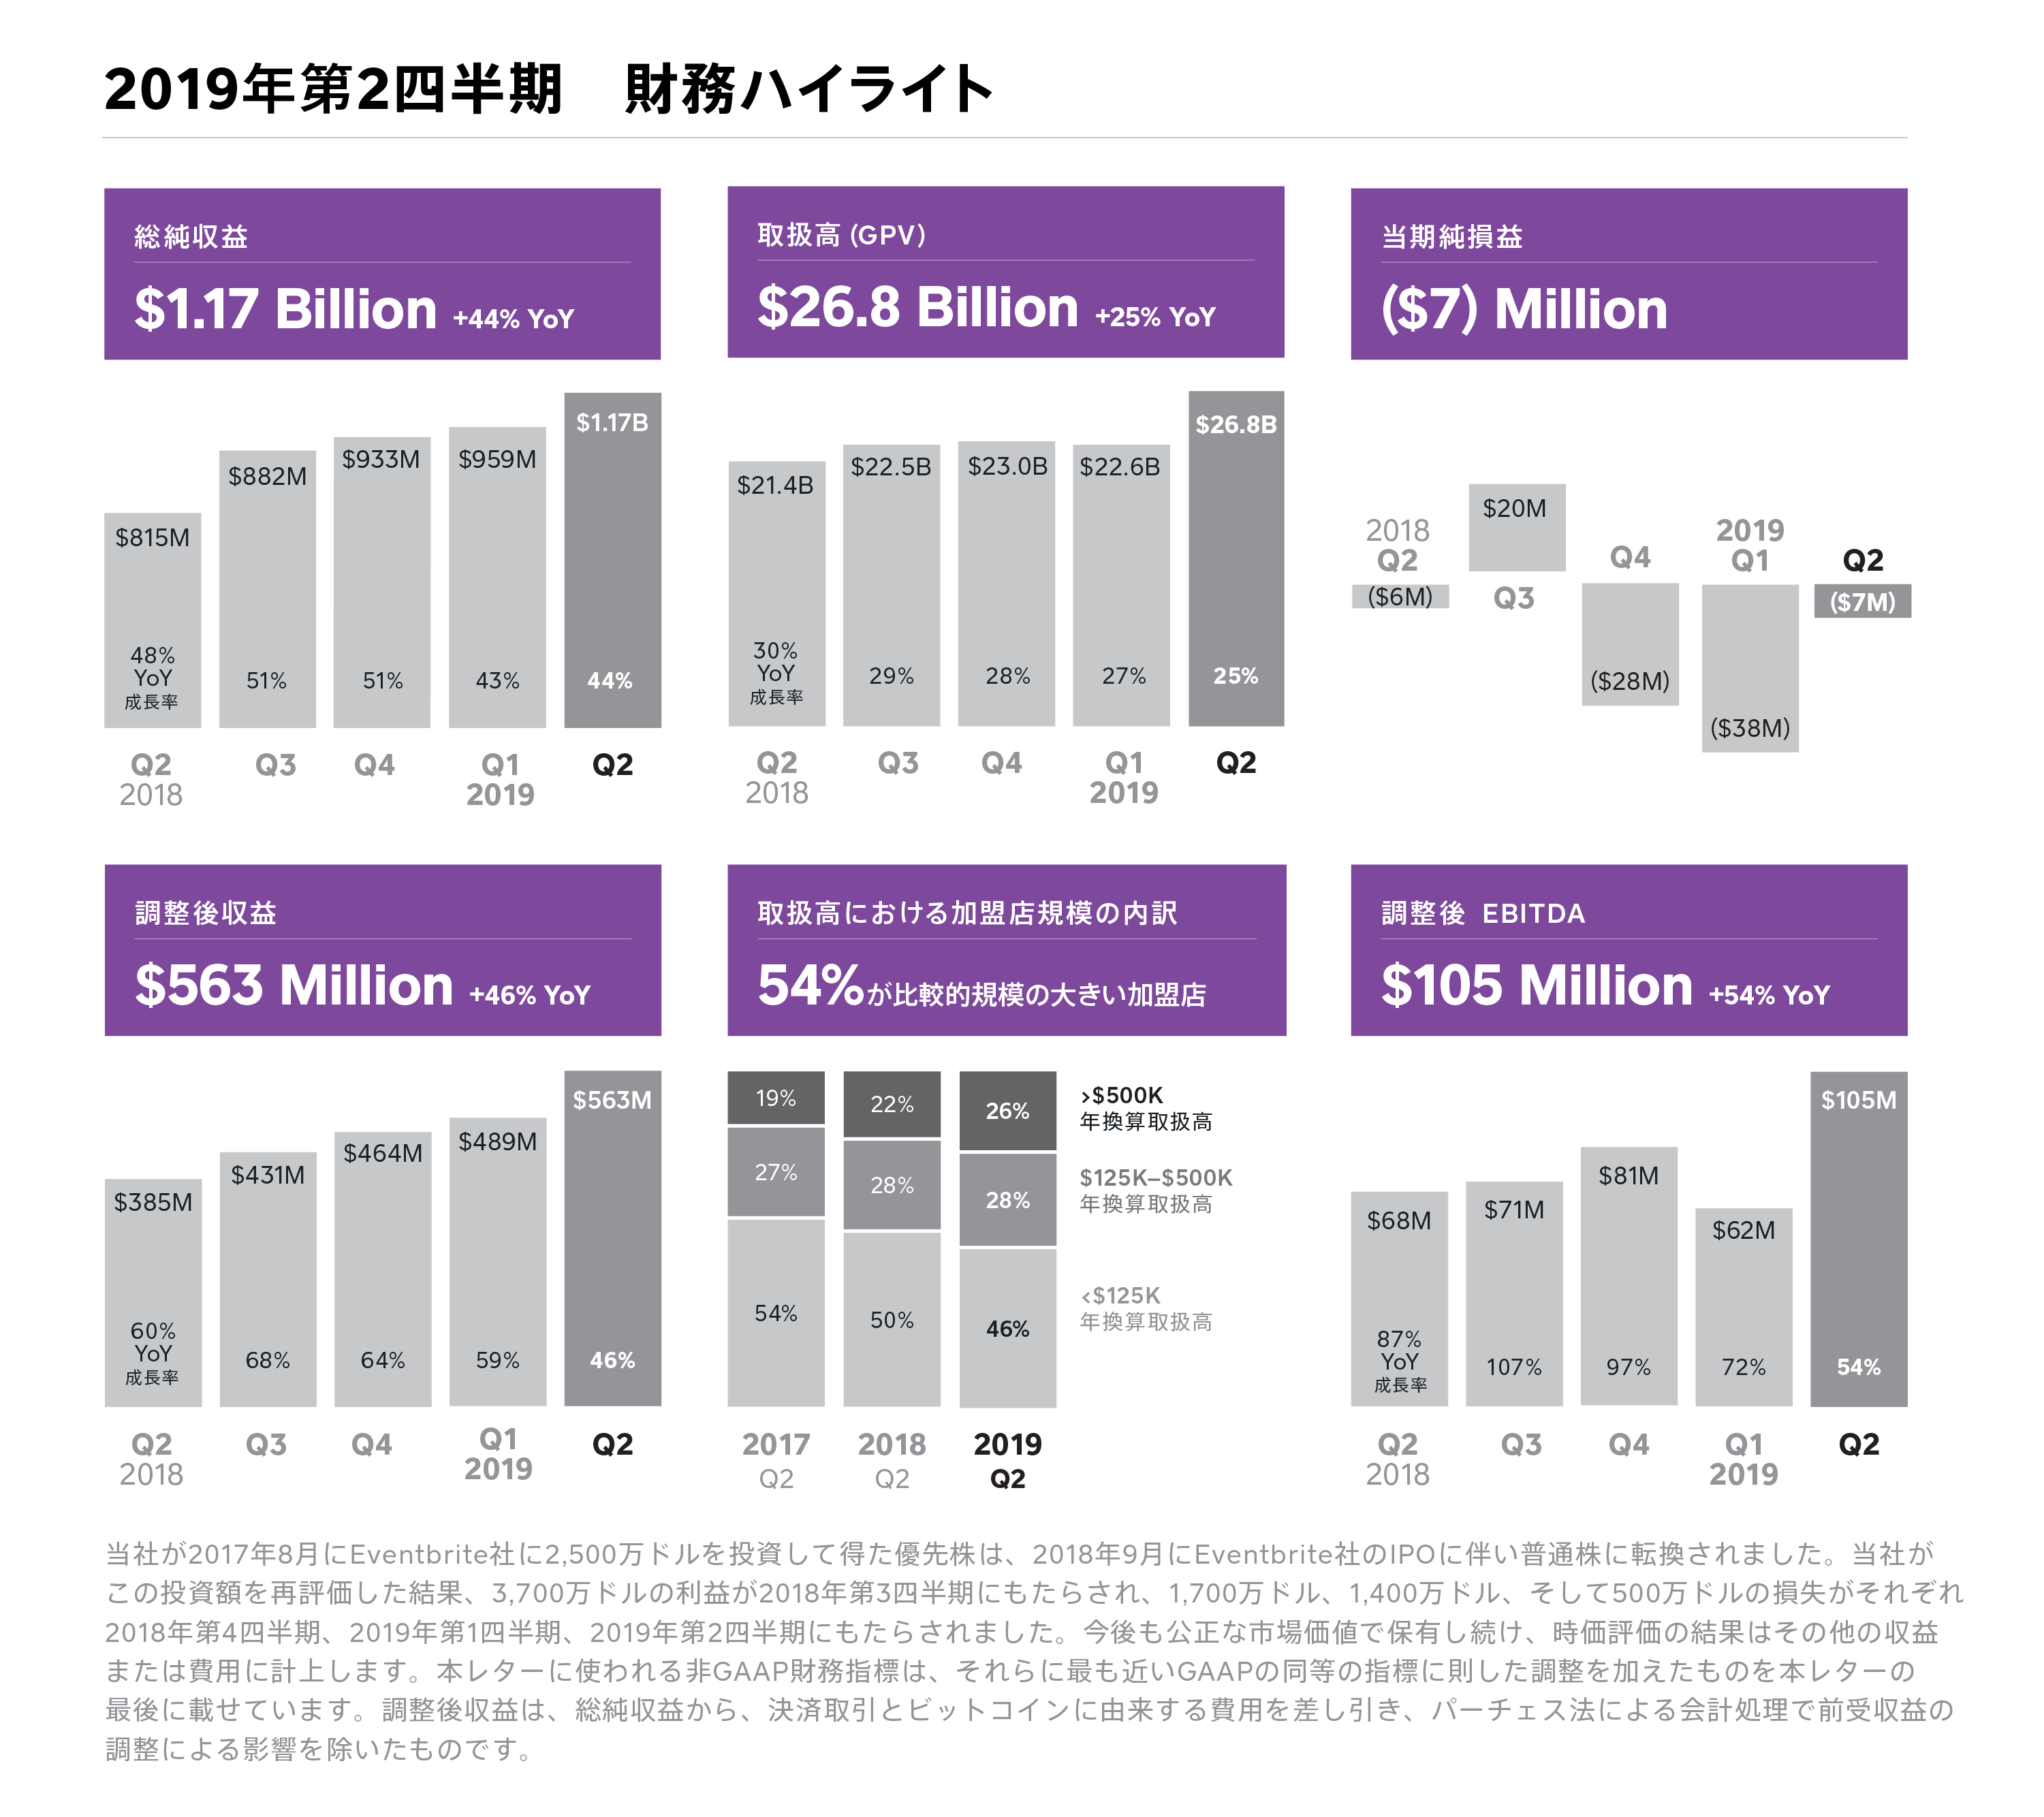 2Q19-Earnings-results-jp